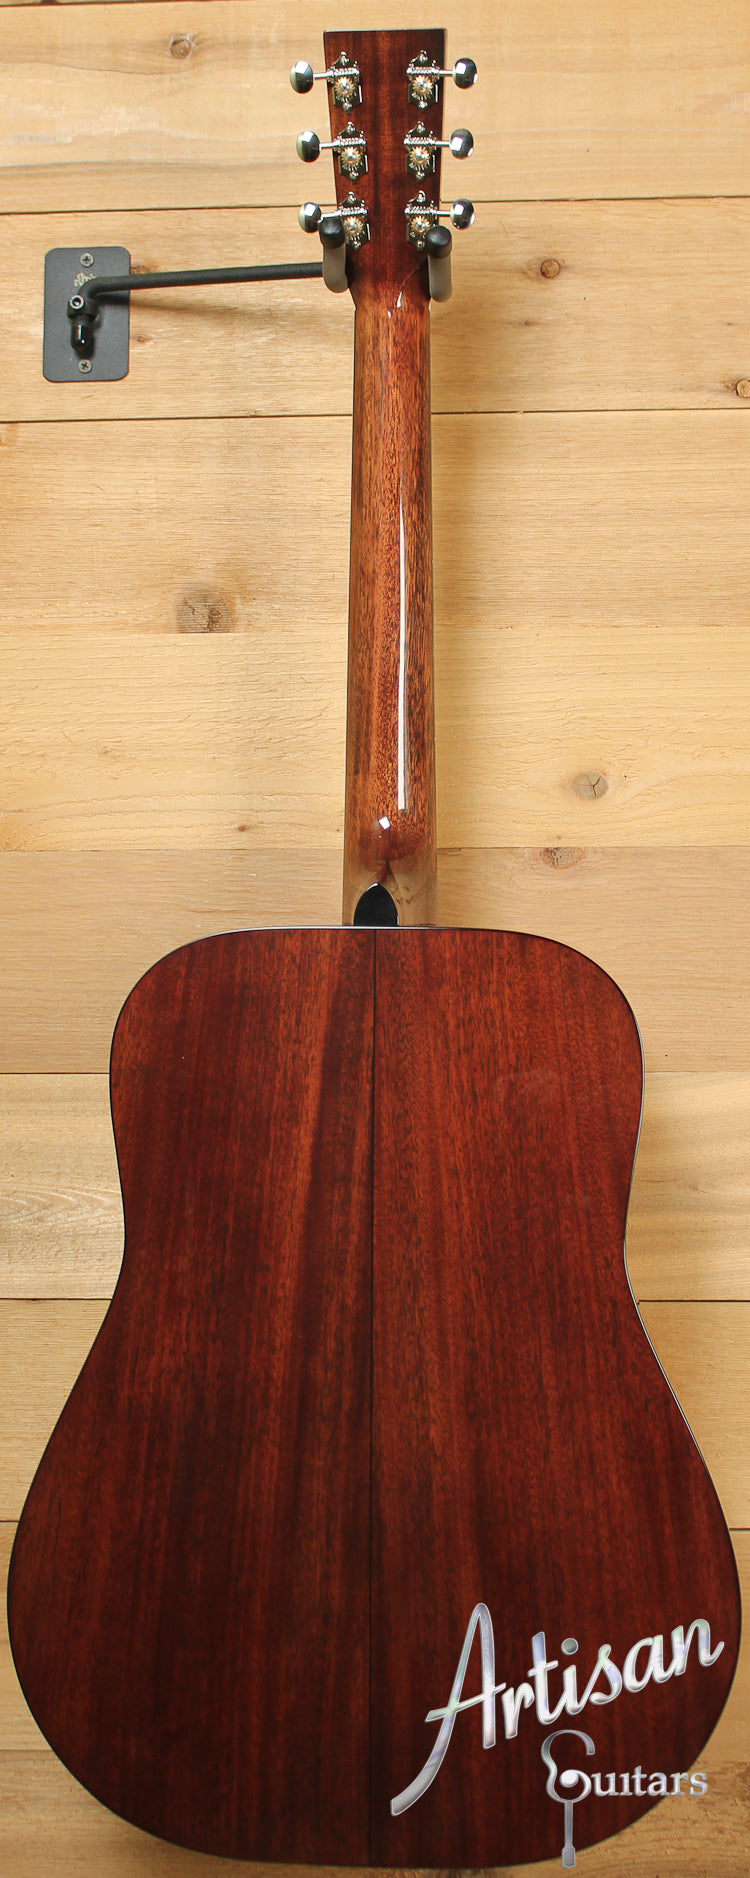 Huss and Dalton TD M Thermo-Cured Appalachian Red Spruce and Sinker Mahogany with Hot Hide Glue ID-7672 - Artisan Guitars